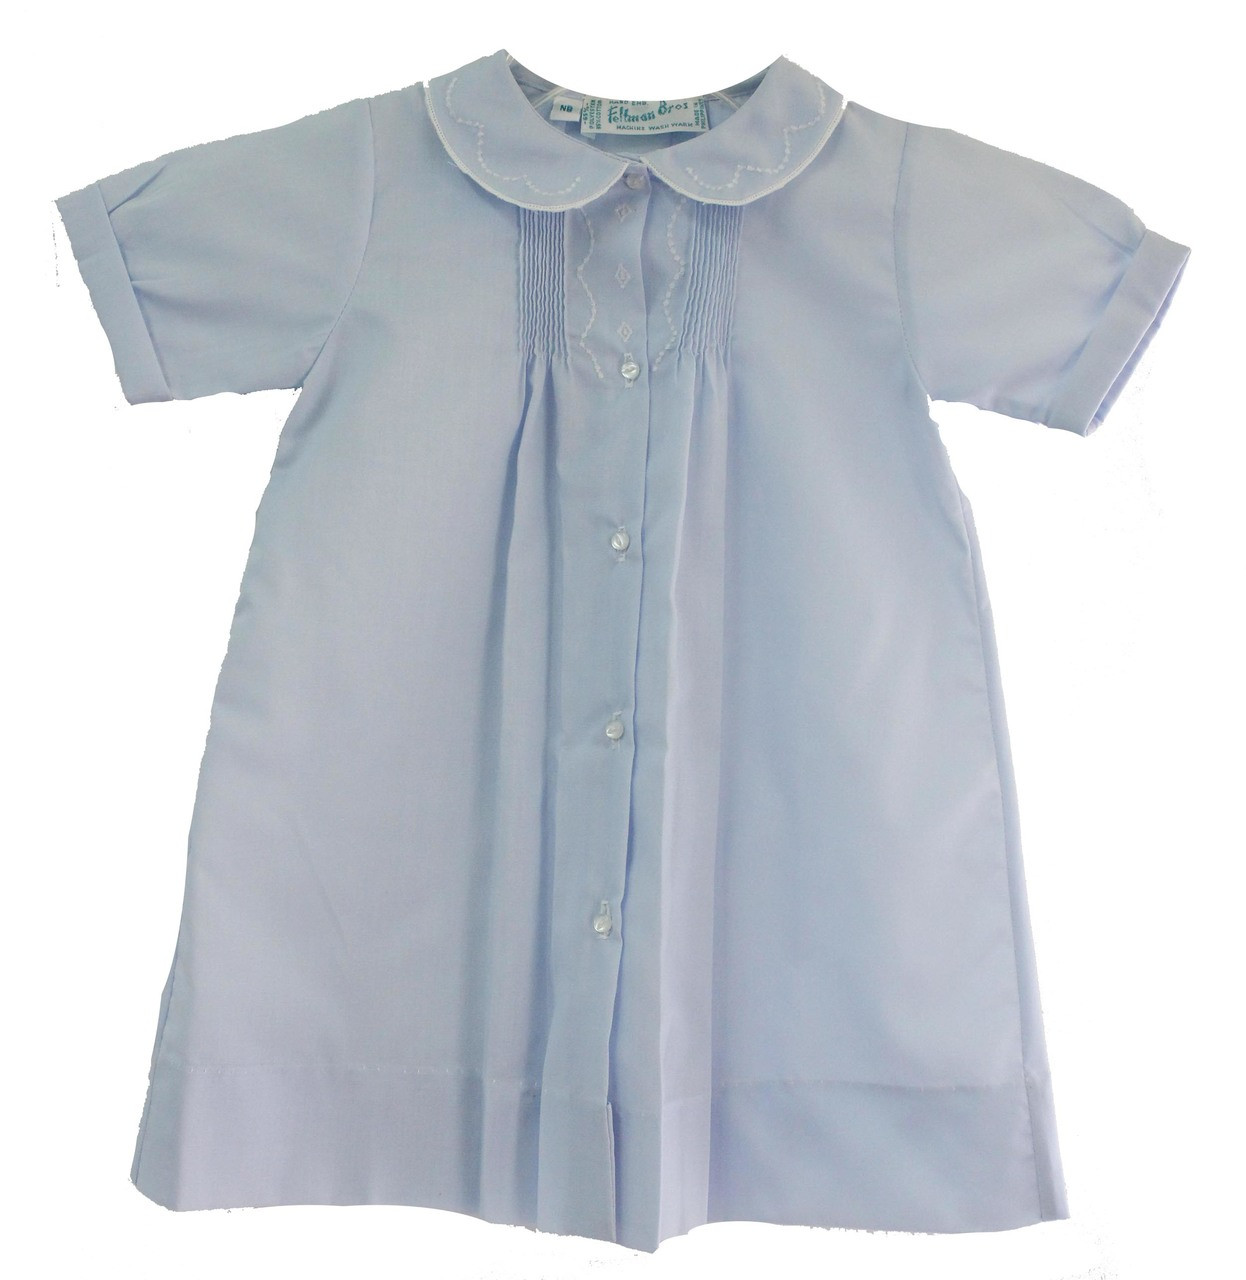 6001db383af Feltman Brothers Newborn Boys Blue Daygown Coming Home Outfit ...